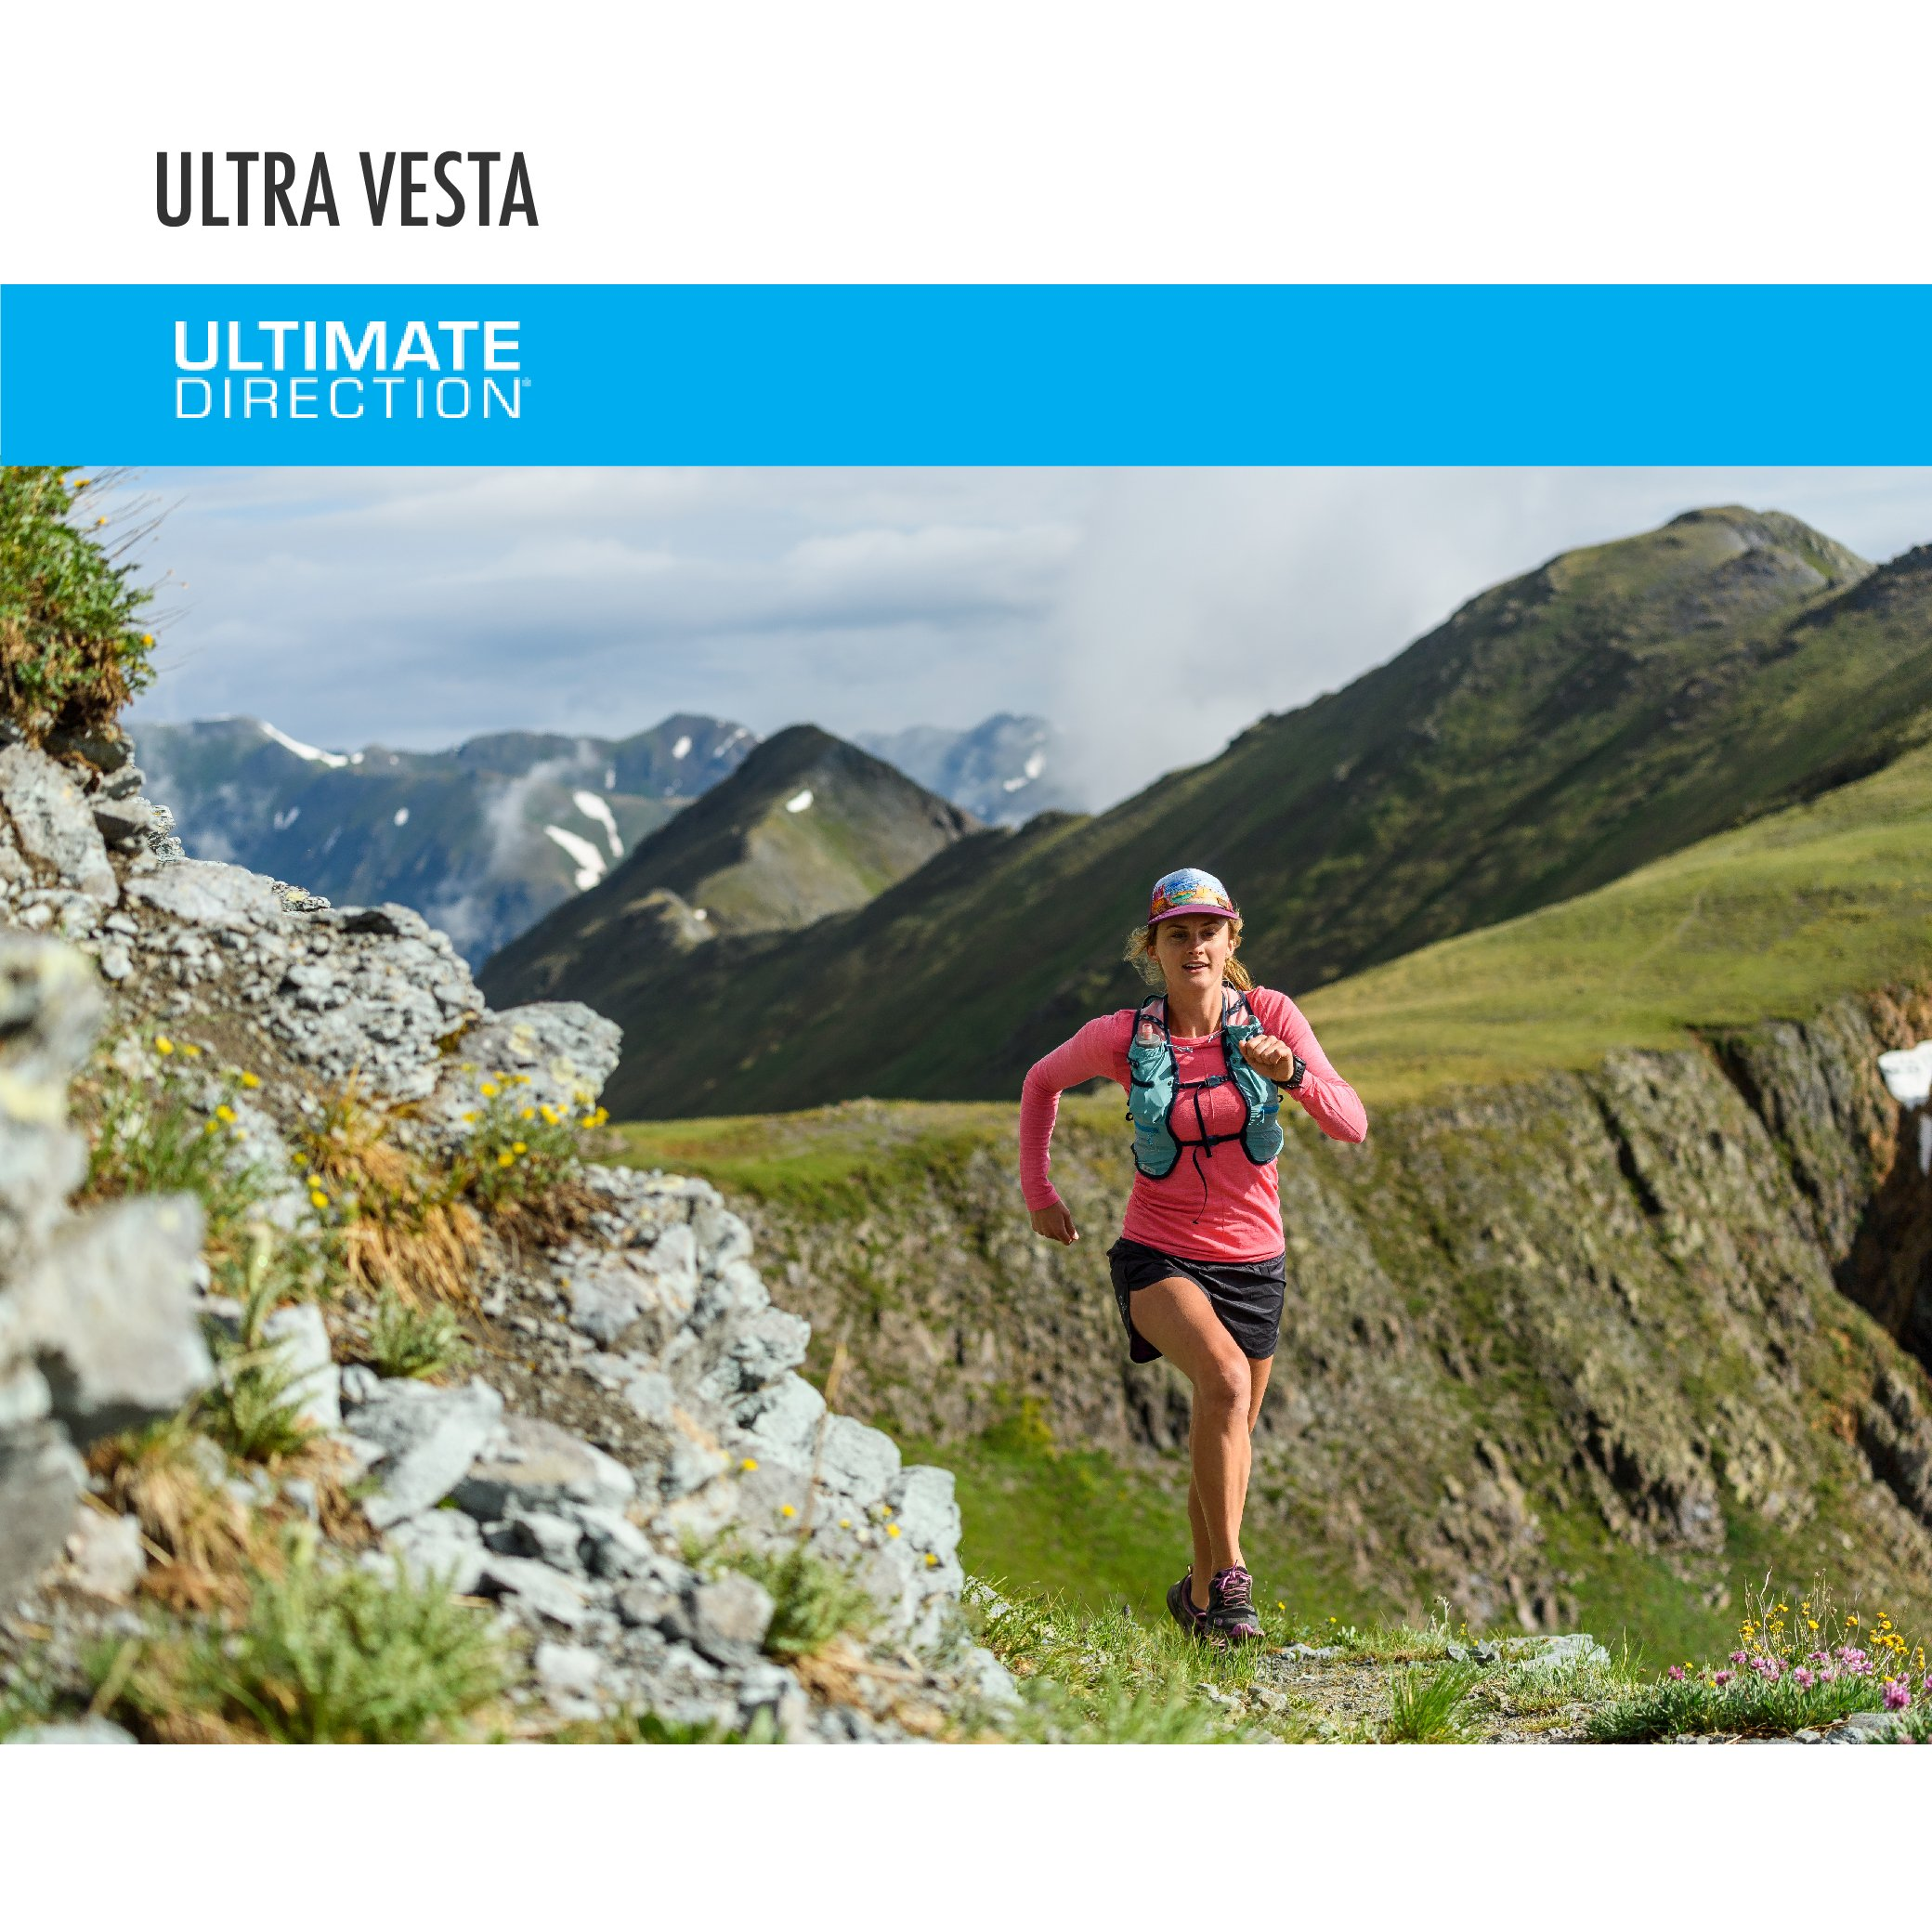 Ultimate Direction Womens Ultra Vesta 4.0, Coral, X-Small/Small by Ultimate Direction (Image #6)